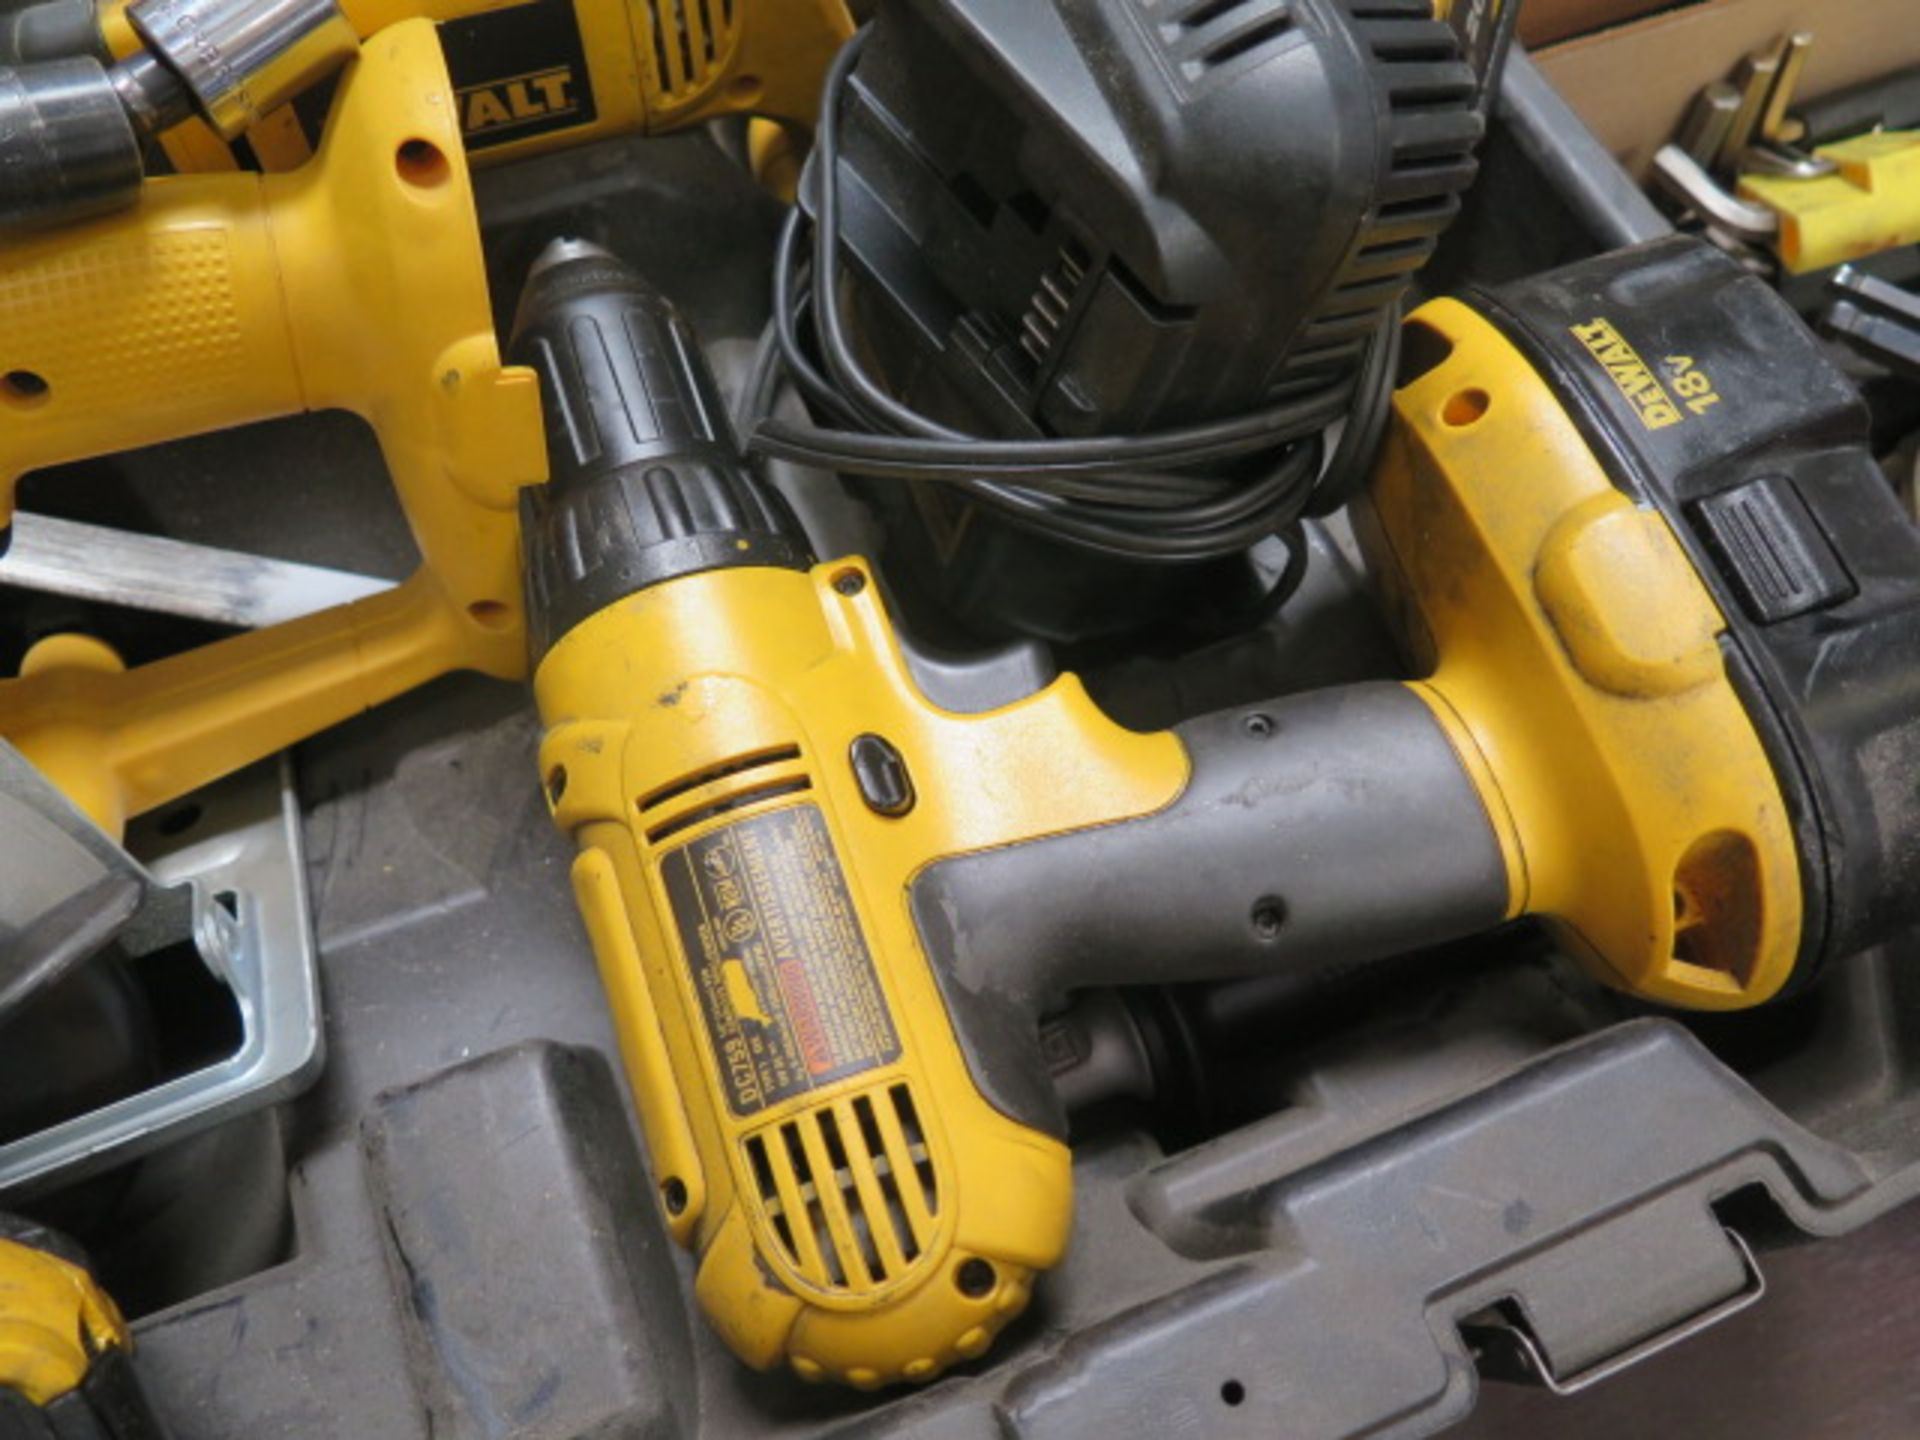 DeWalt Cordless Tools w/ Charger (SOLD AS-IS - NO WARRANTY) - Image 7 of 9